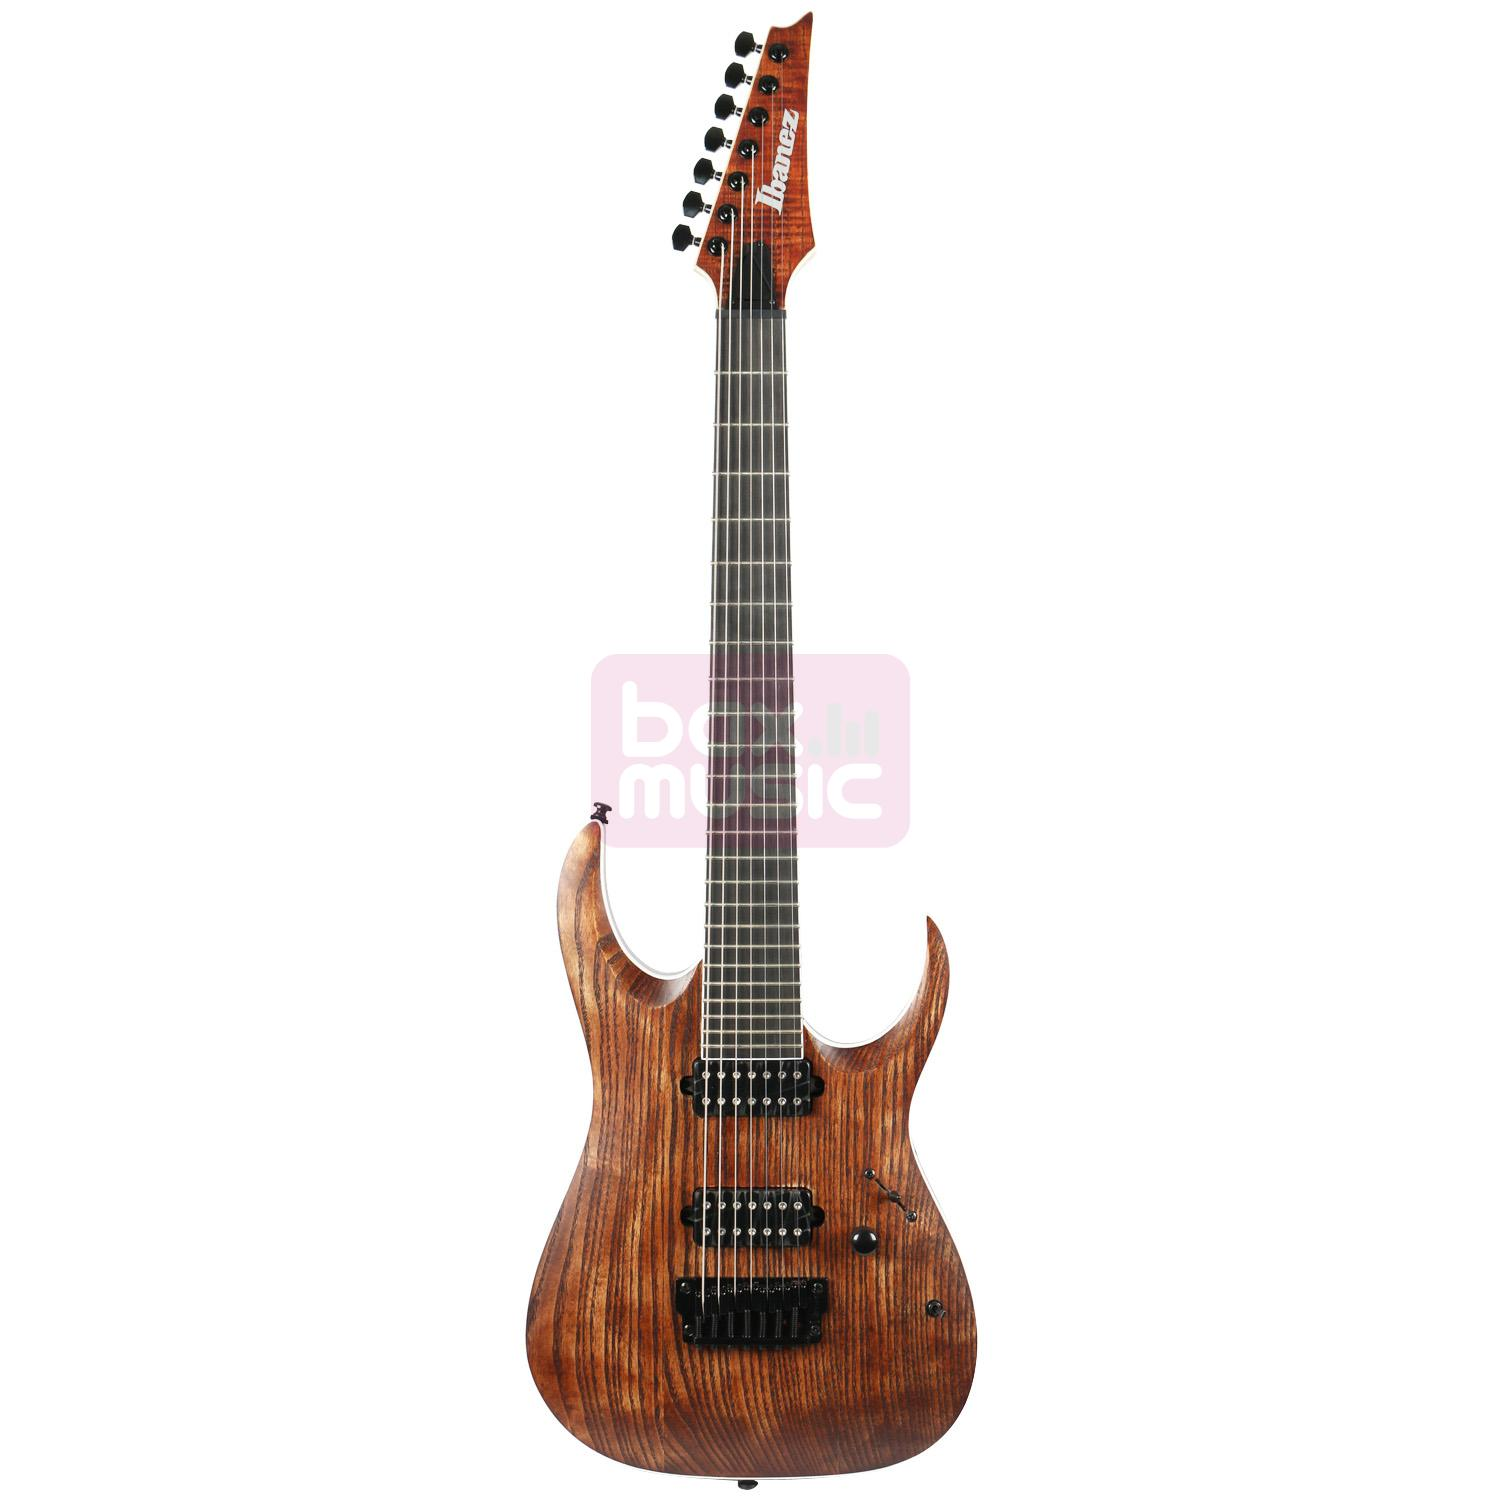 Ibanez RGAIX7U Iron Label Antique Brown Stained